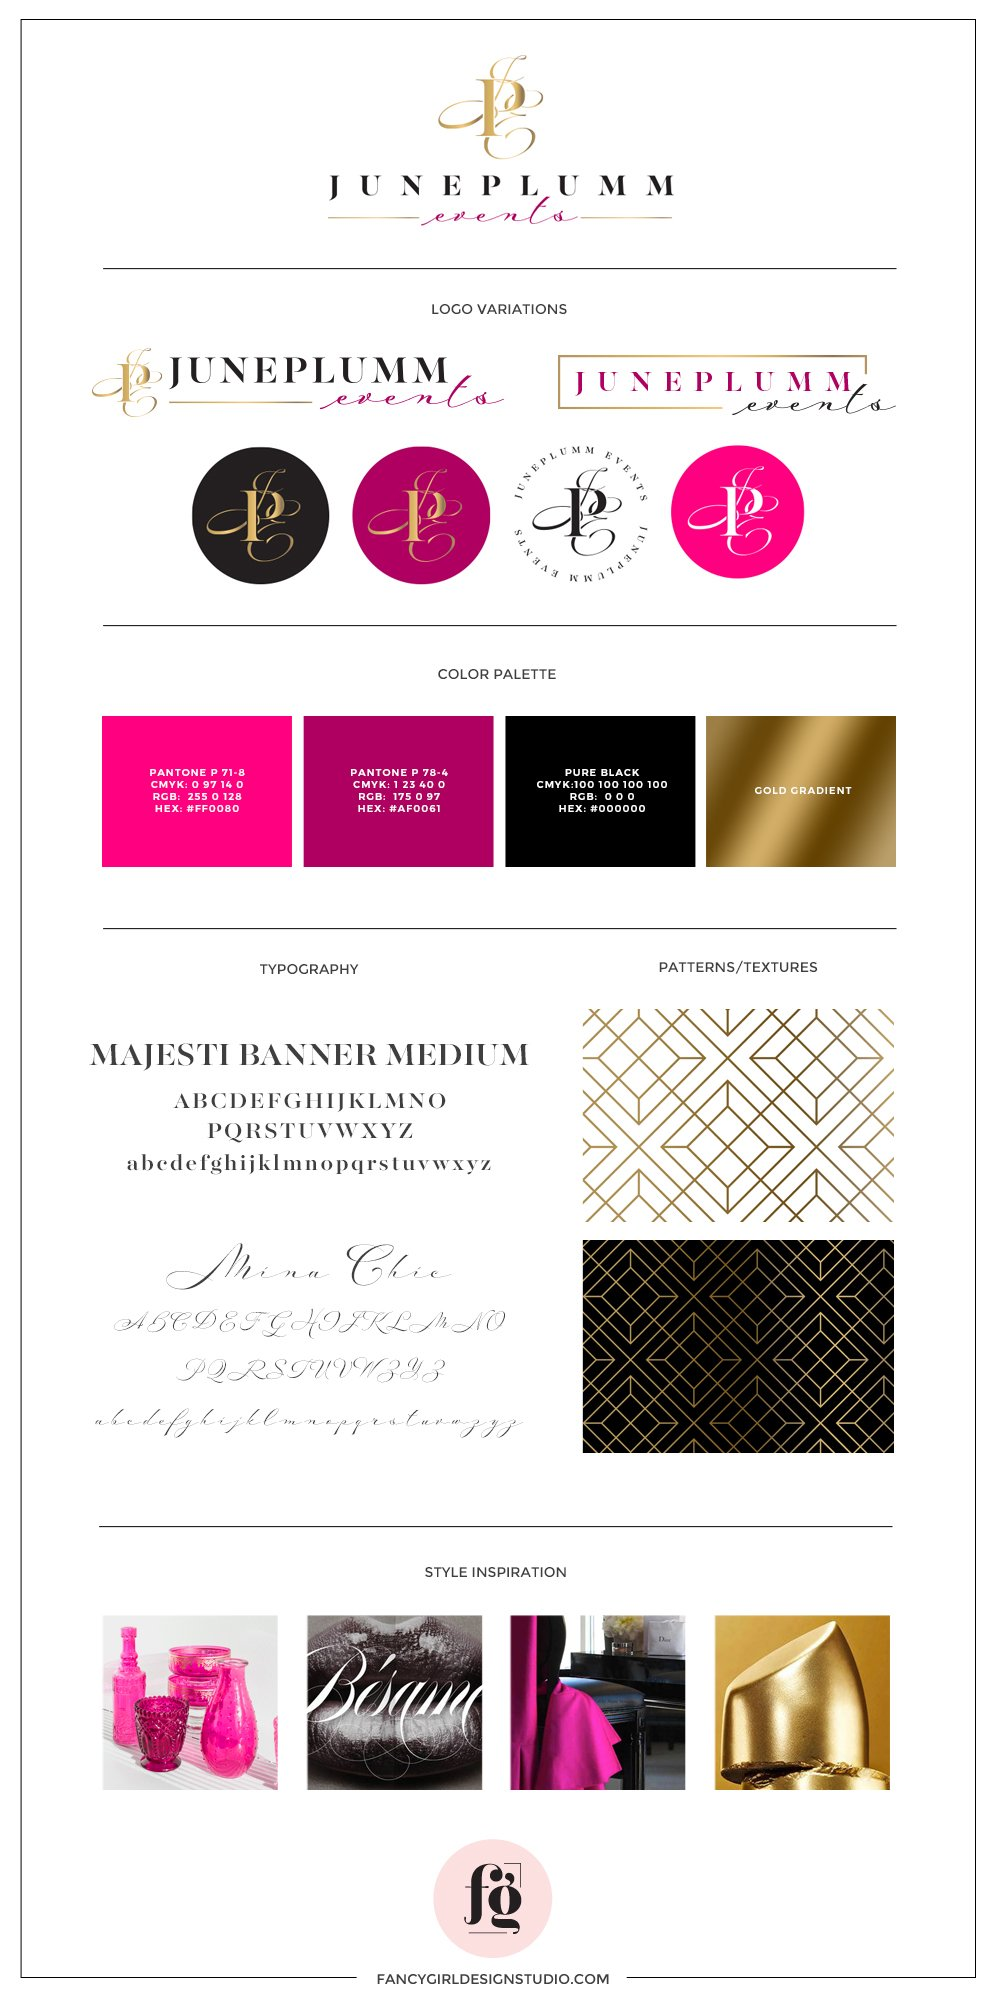 brand guide for JunePlumm Events by Fancy Girl Design Studio | glamorous, sophisticated, and vibrant logo design